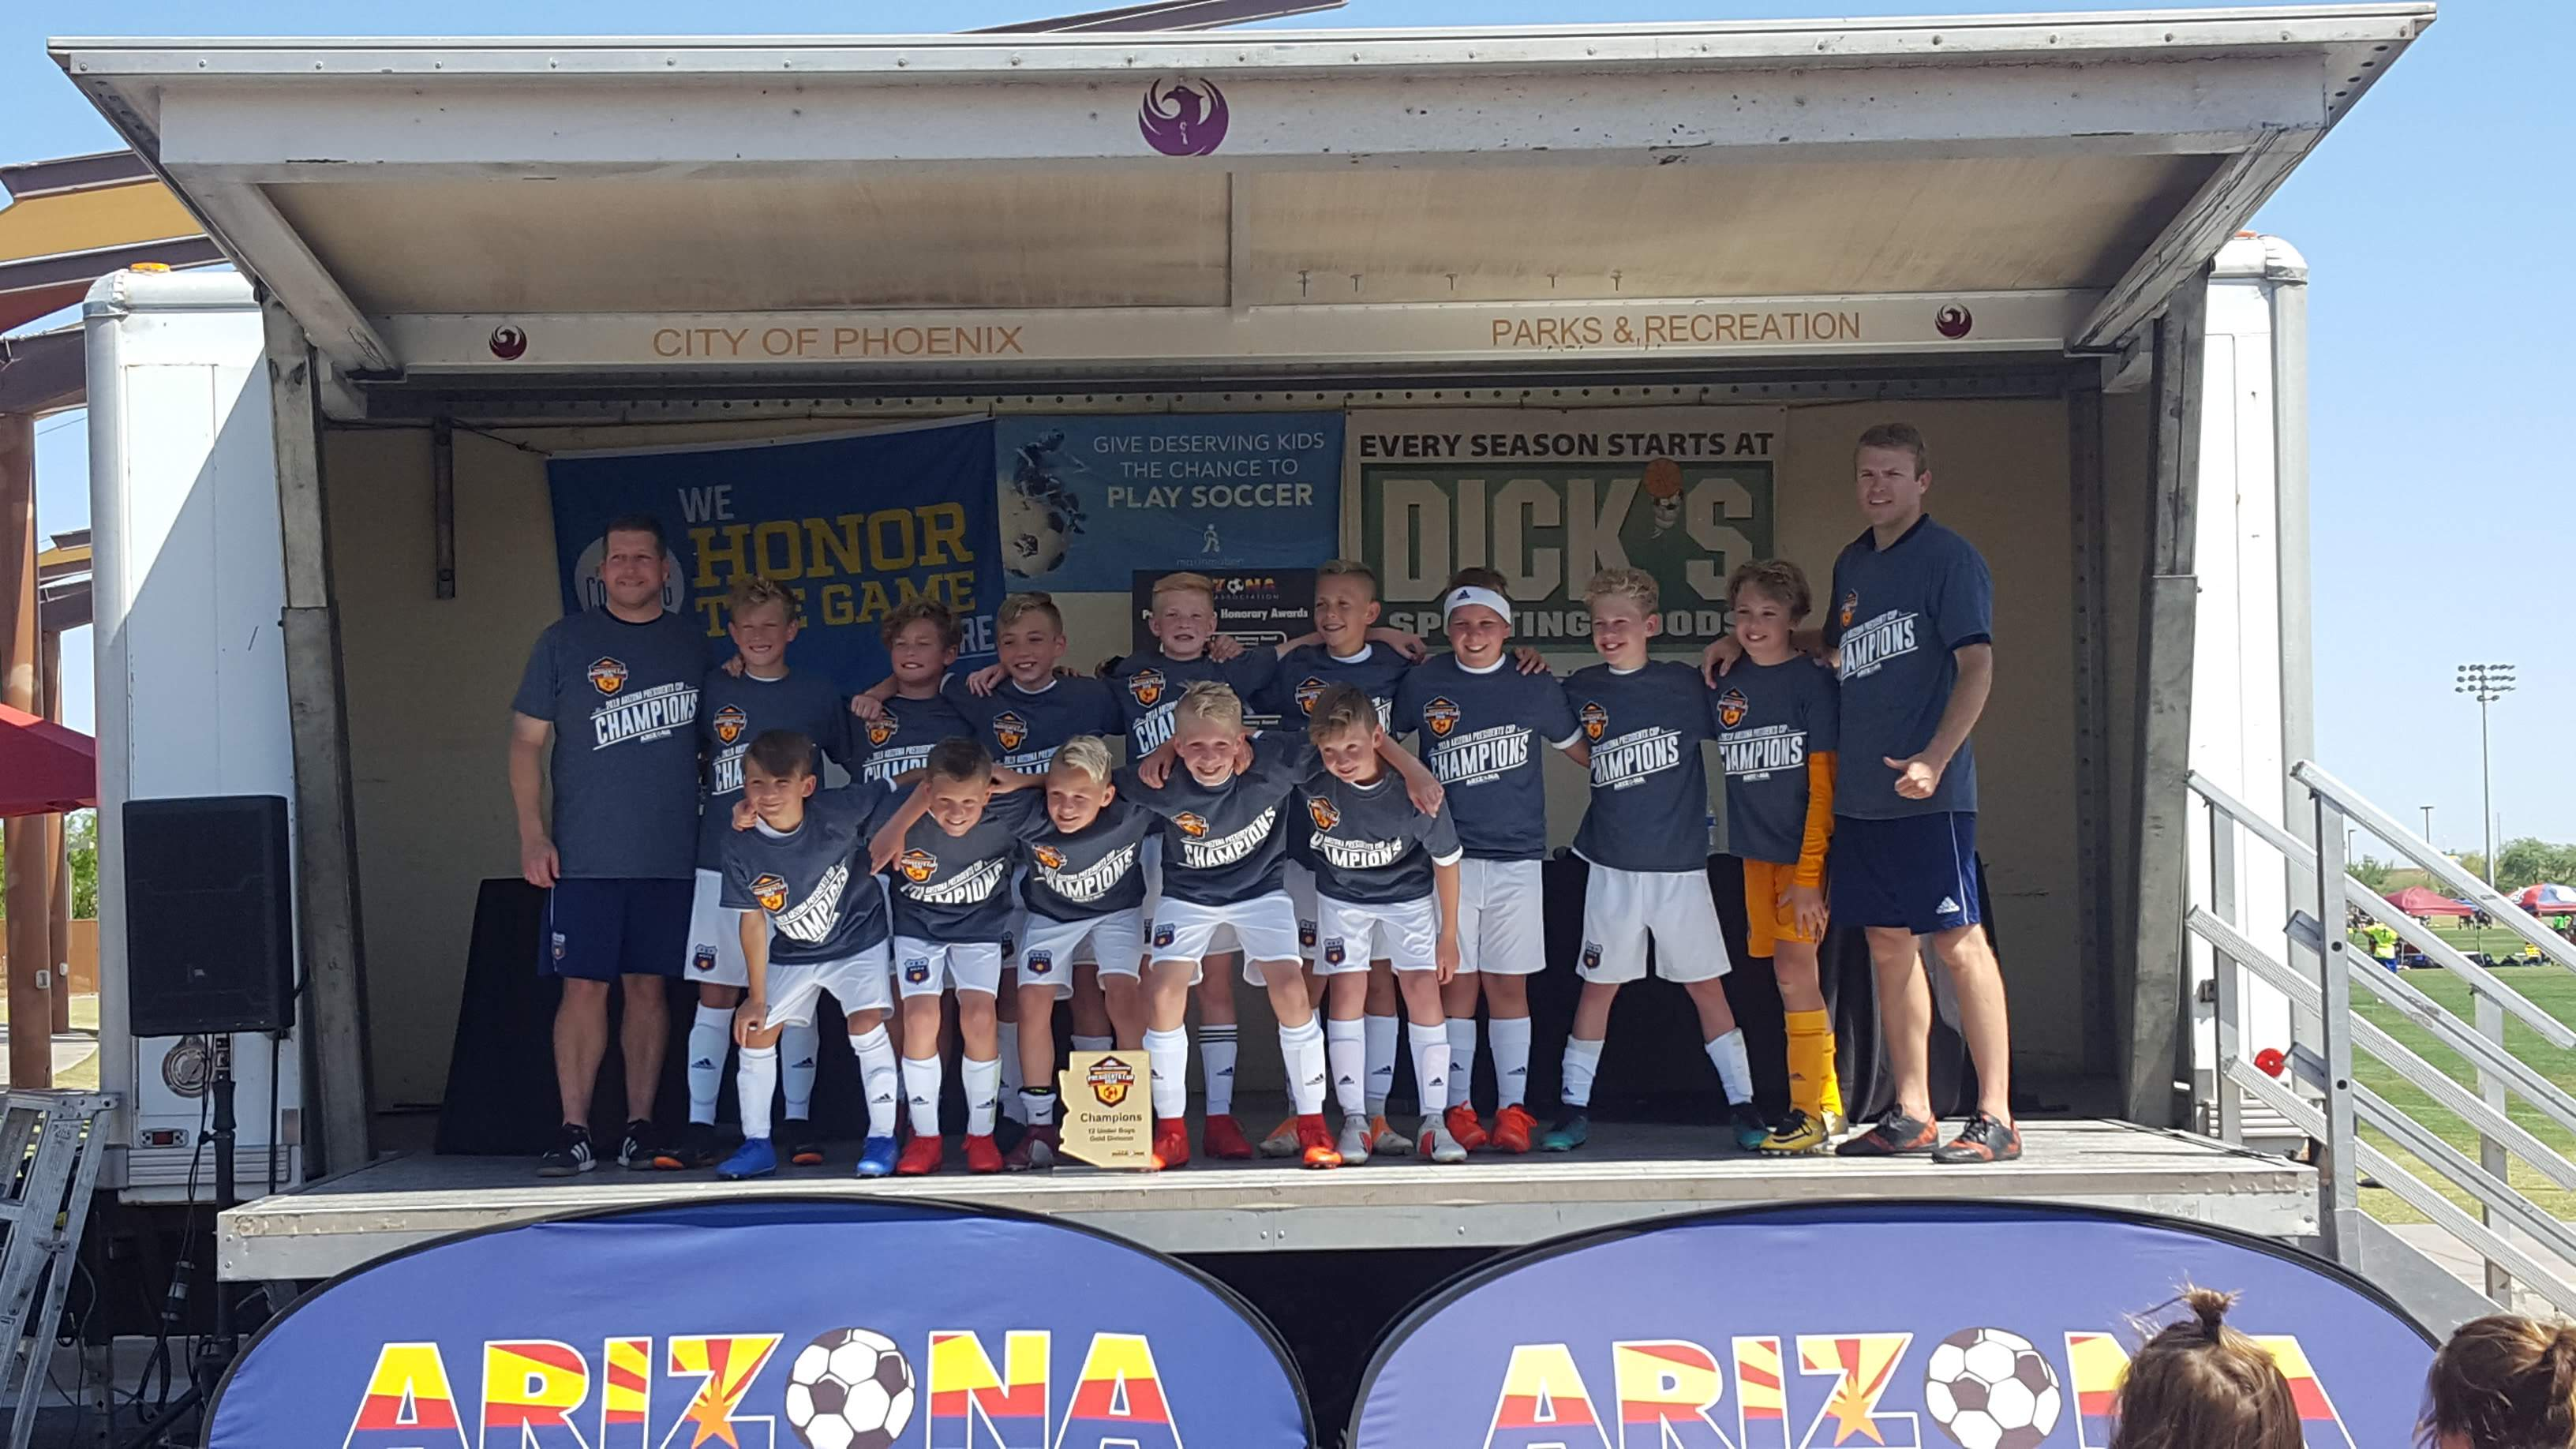 The 2007 Boys Blue soccer team poses after winning the Arizona President's Cup Tournament in April 2019 in Phoenix.